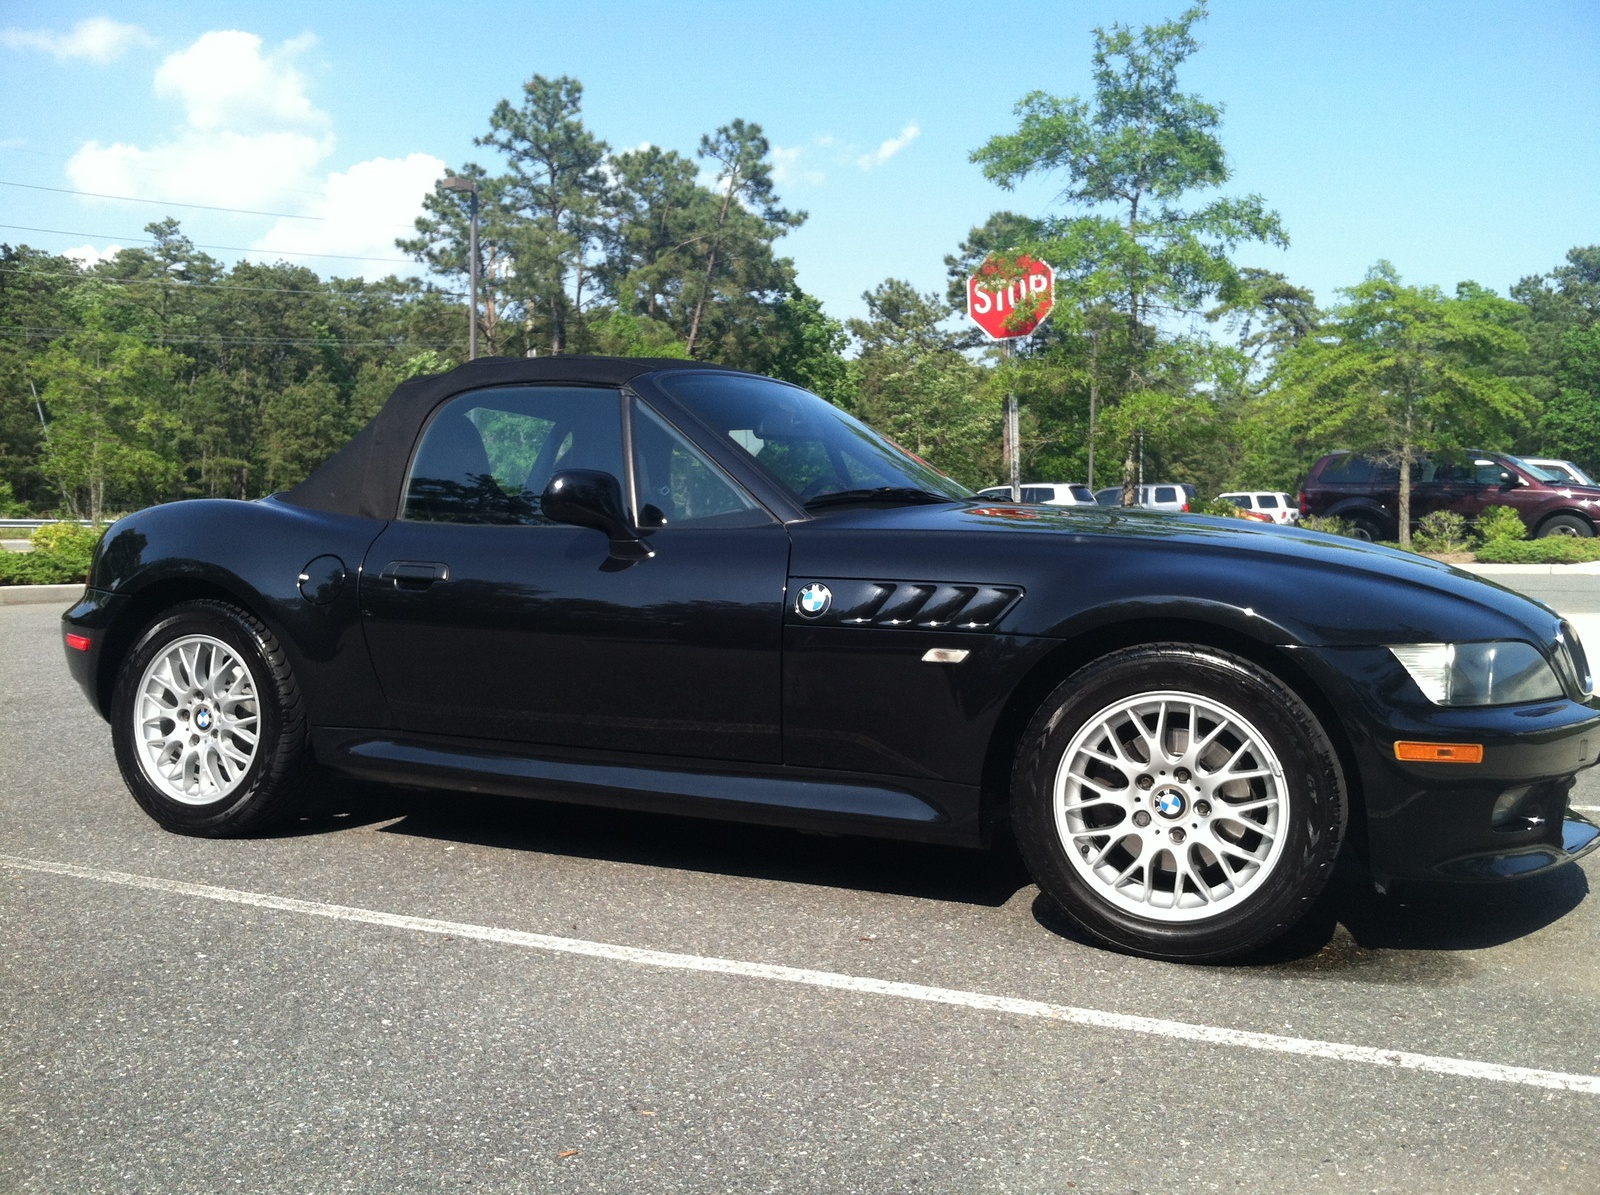 Bmw Z3 Convertable Used 2003 Bmw Z4 Pricing For Sale Edmunds 2002 Bmw Z3 Pictures Cargurus Bmw